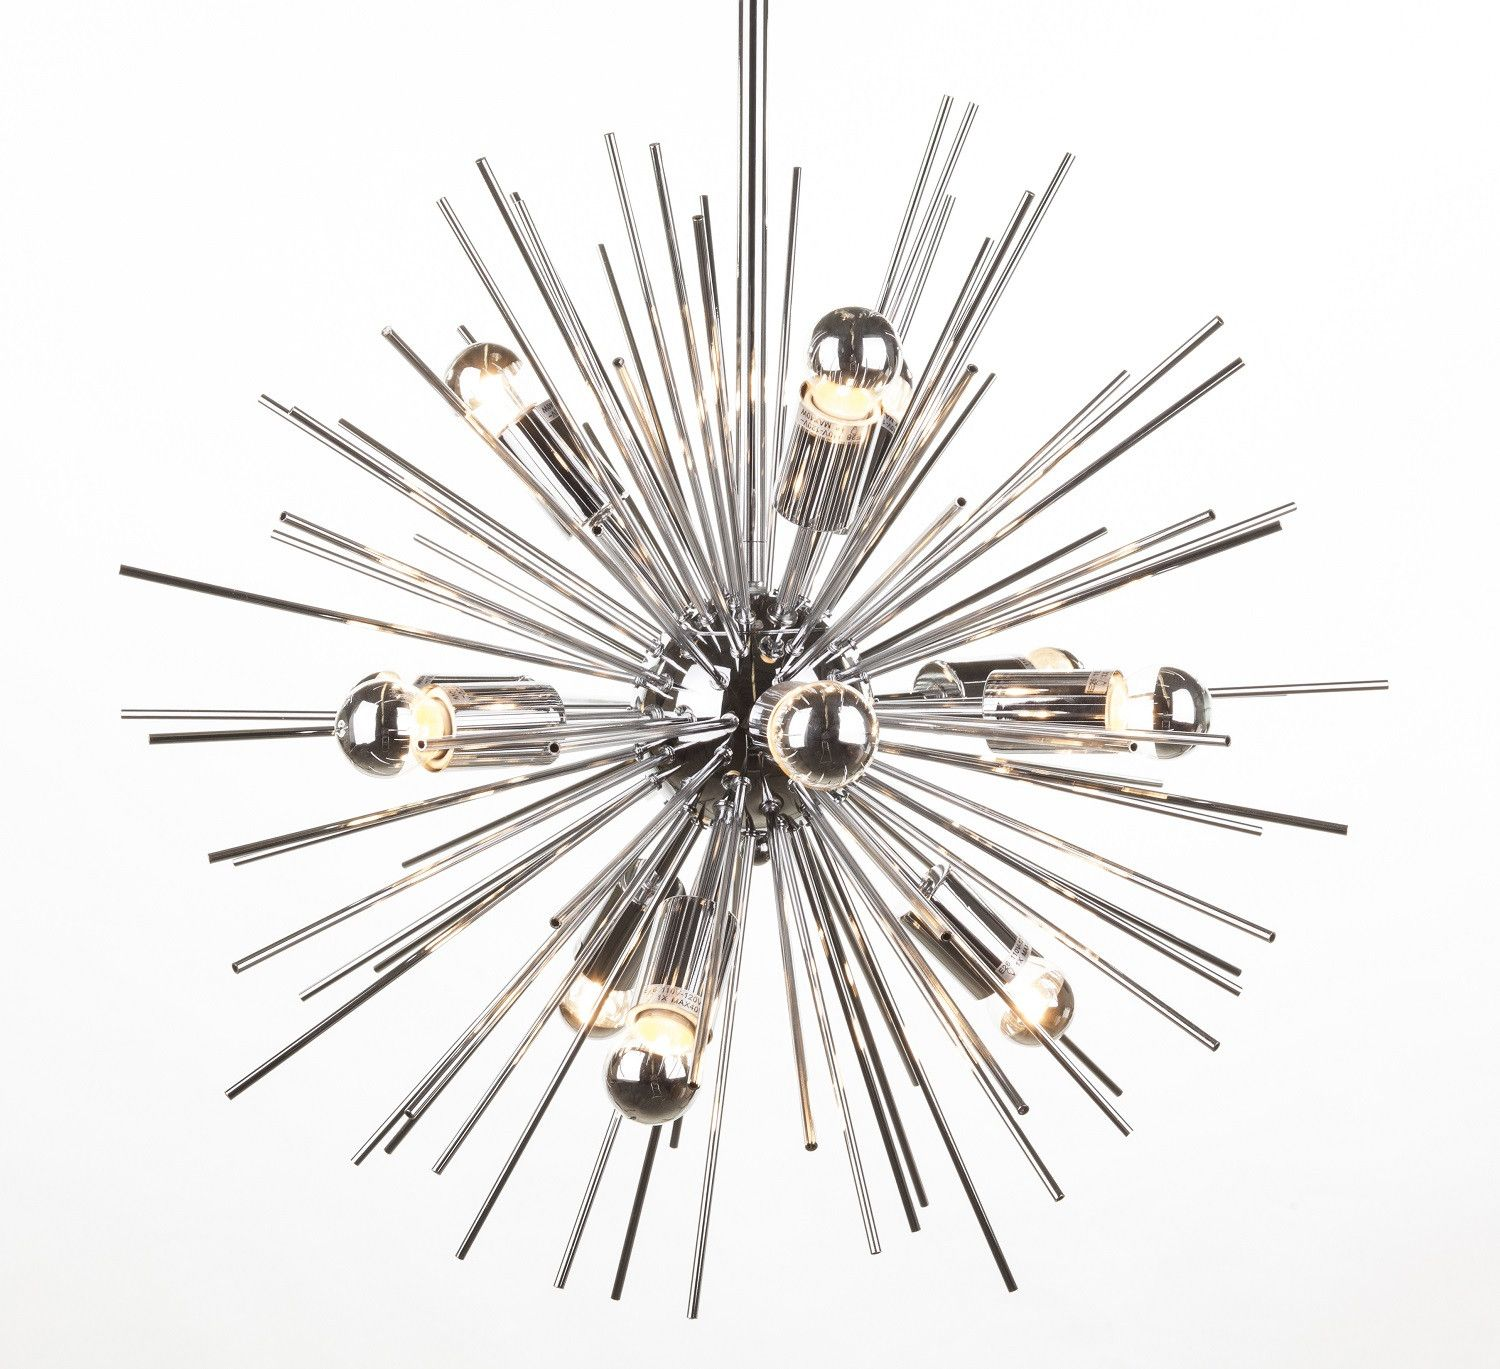 Quorum electra 8 light sputnik chandelier amp reviews wayfair - Mid Century Modern Reproduction Zanadoo Chandelier Inspired By France And Son Furnishing Co